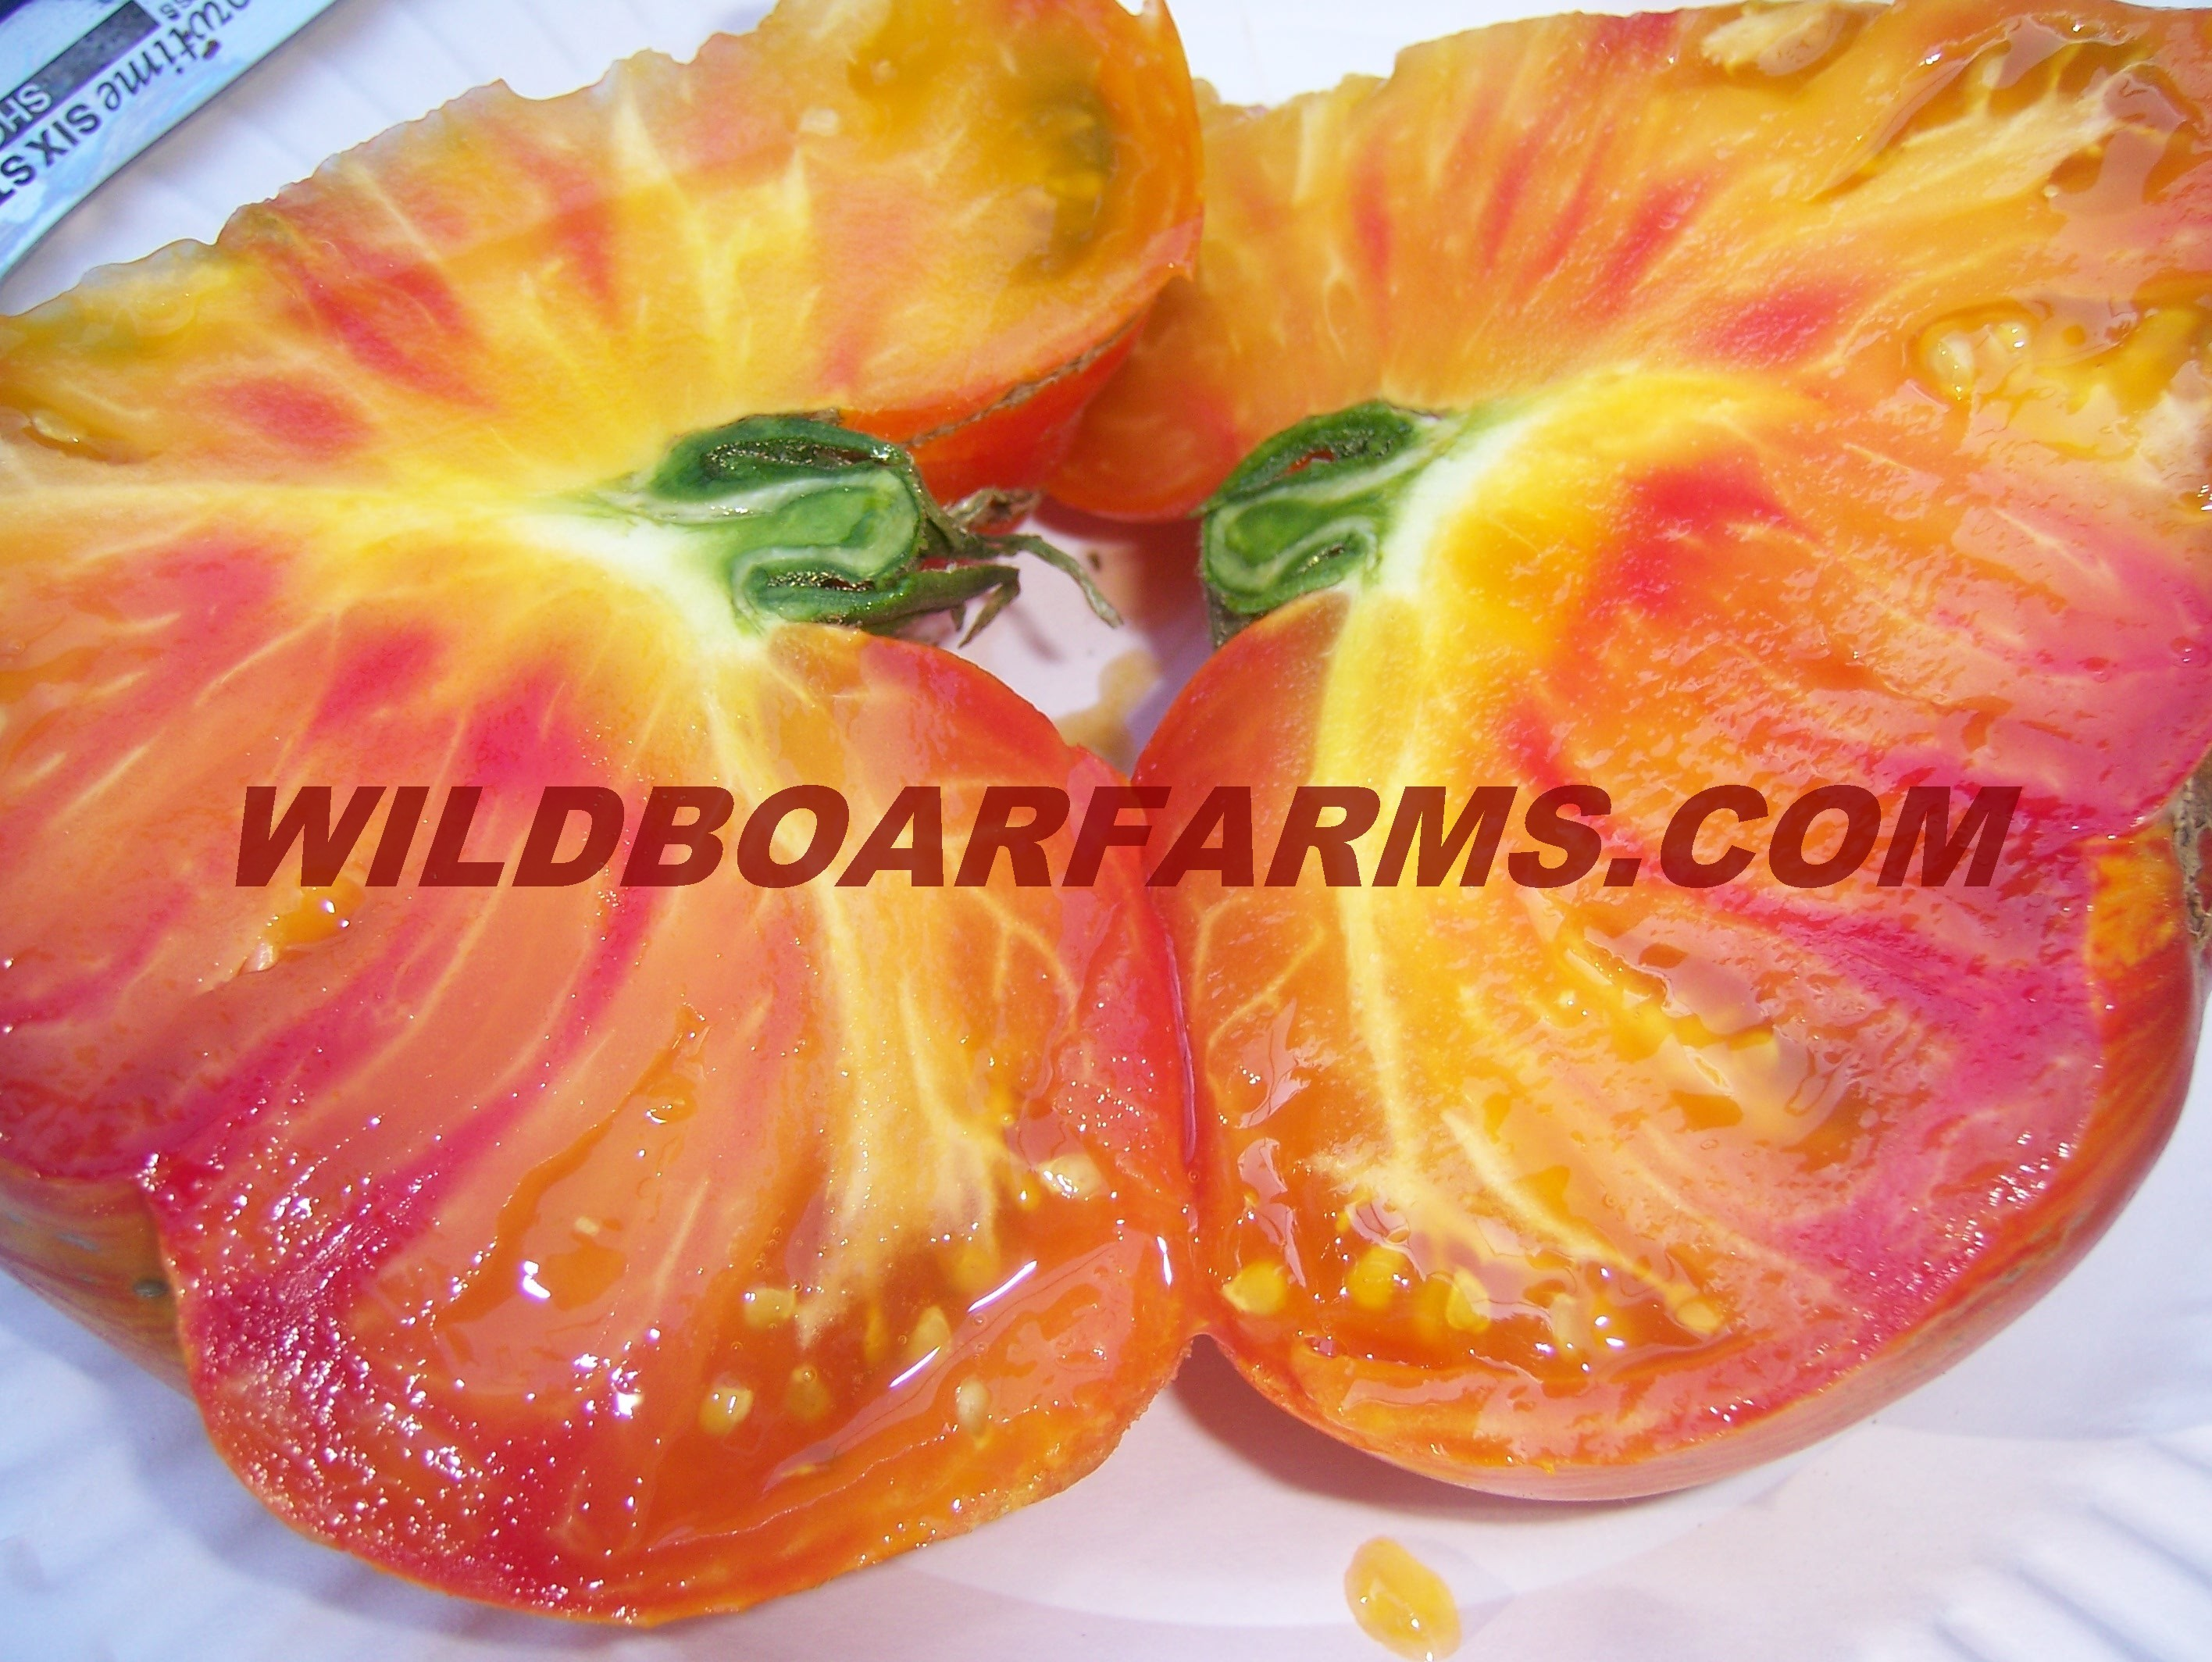 Wild Boar Farms Tomatoes 39